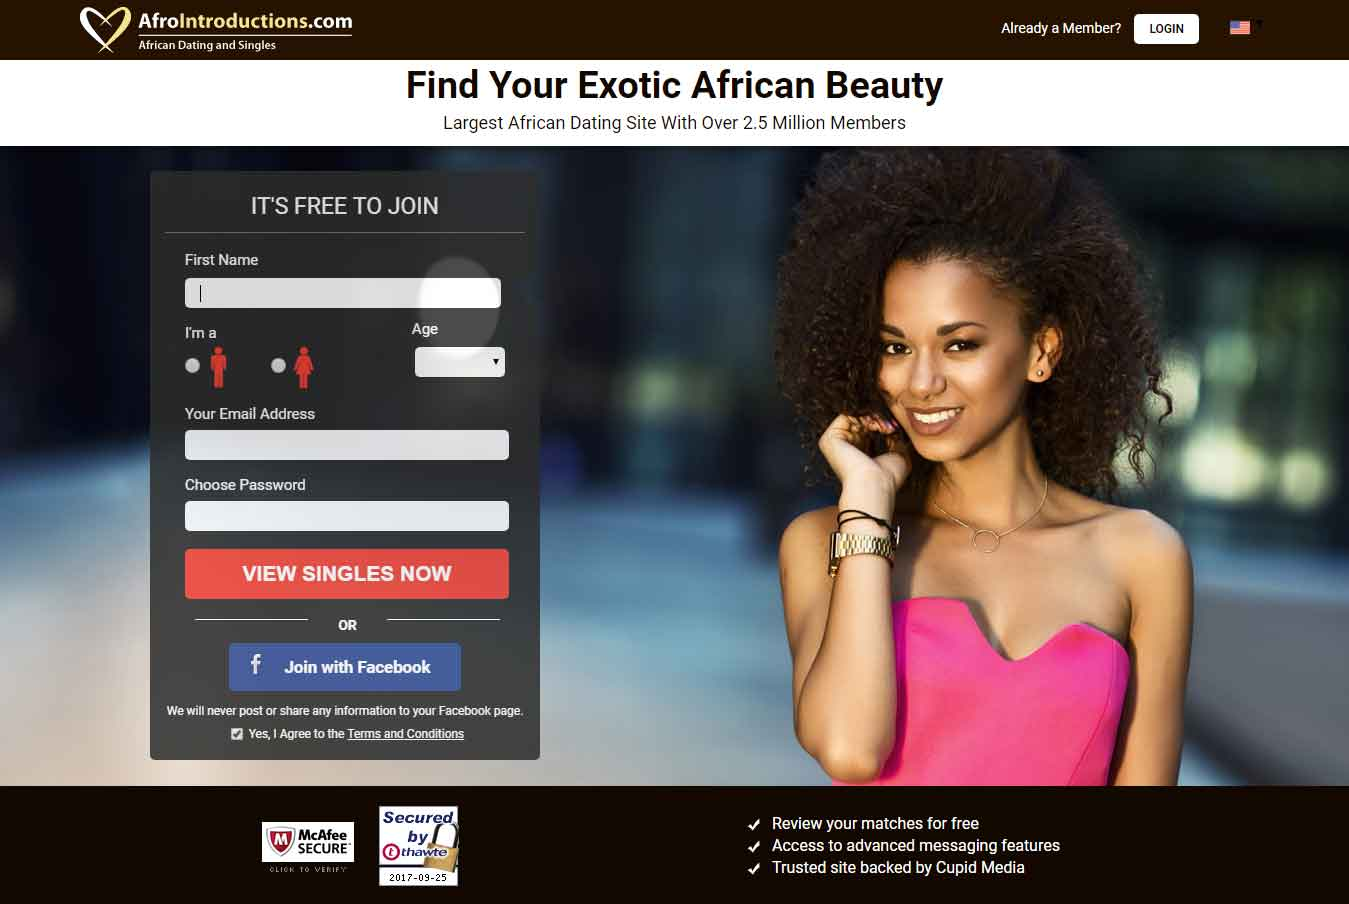 Afro Dating Introduction Lines For Africa